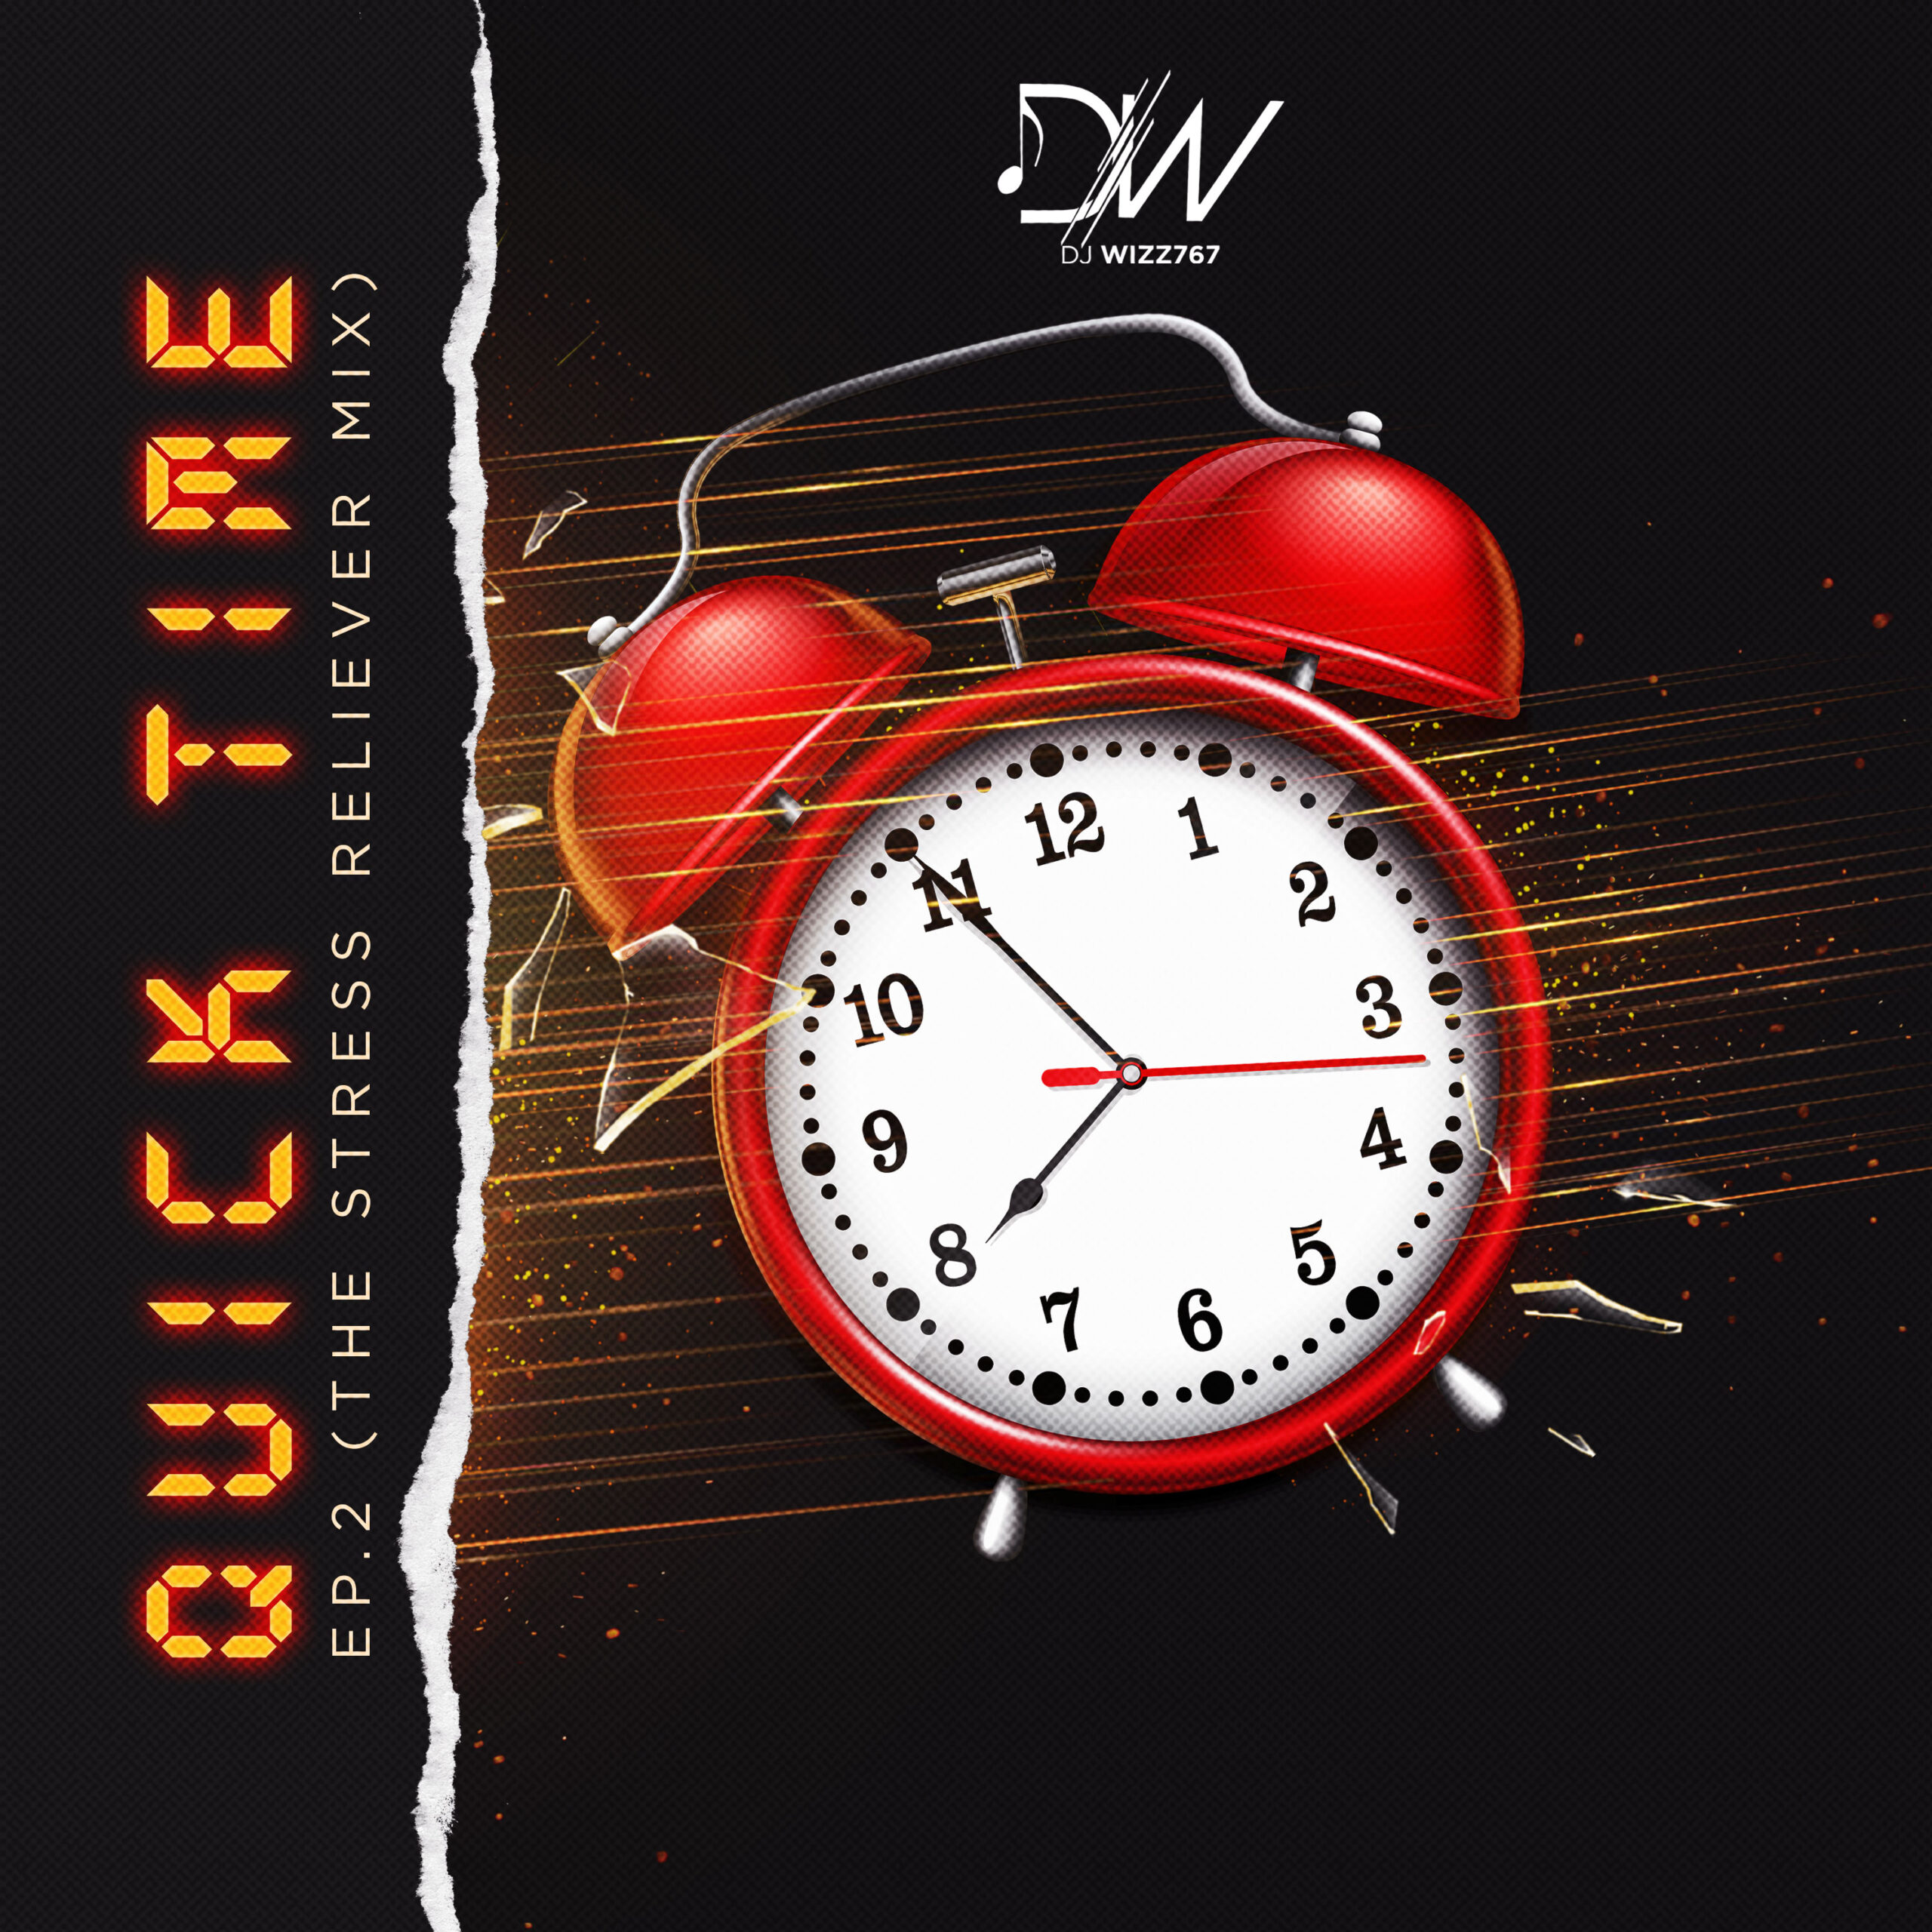 Dj Wizz767 – QUICK TIME EP.2 (THE STRESS RELIEVER MIX)